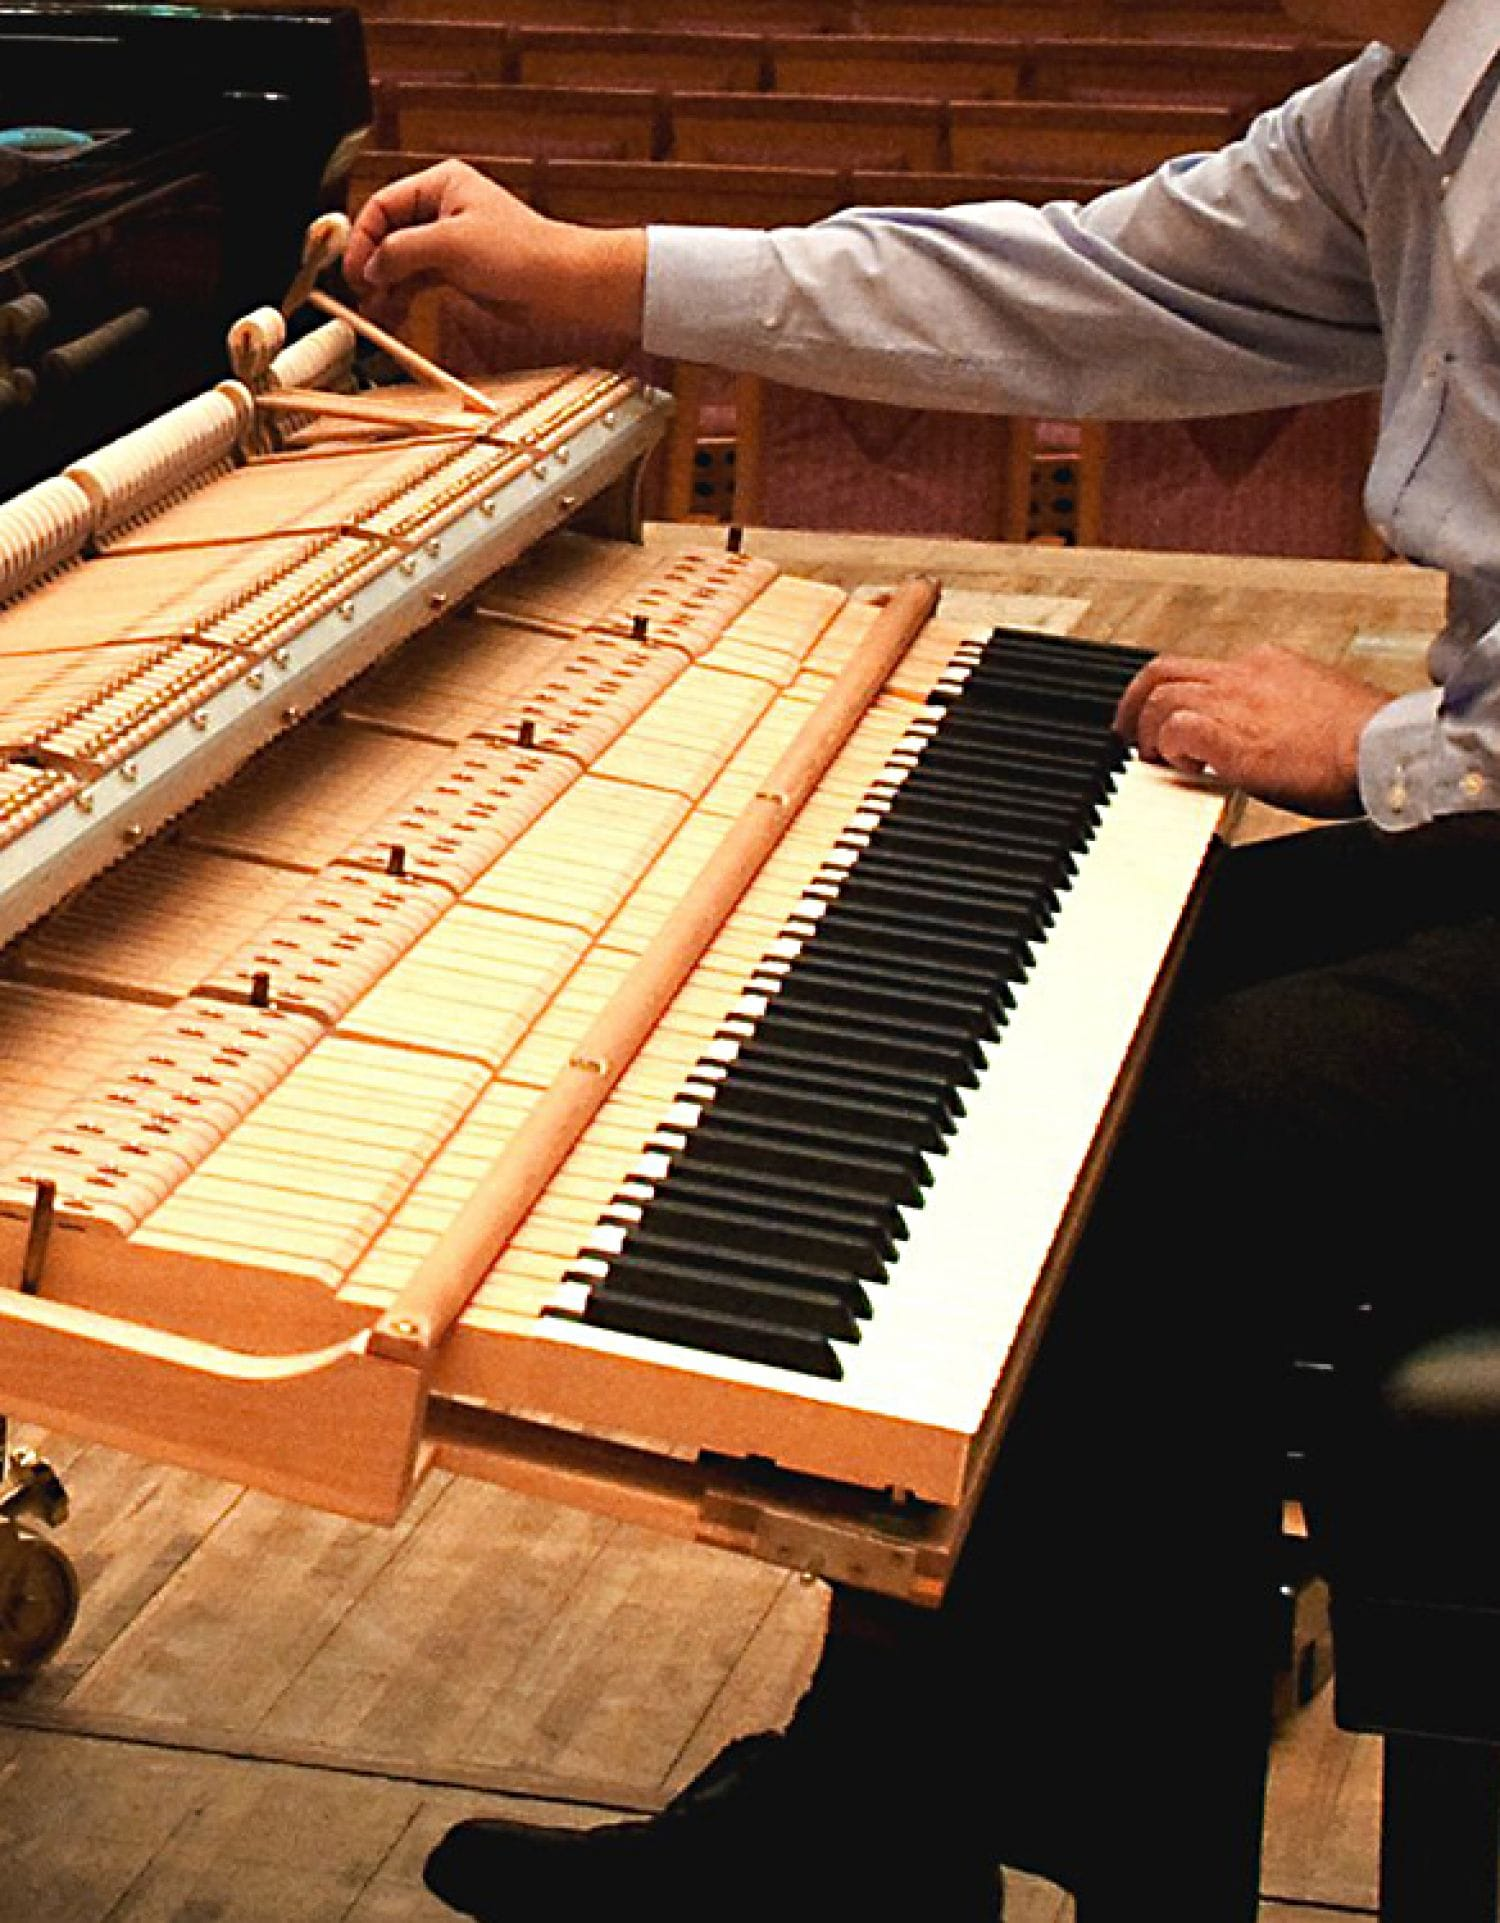 Technician testing hammers as he hits keys.